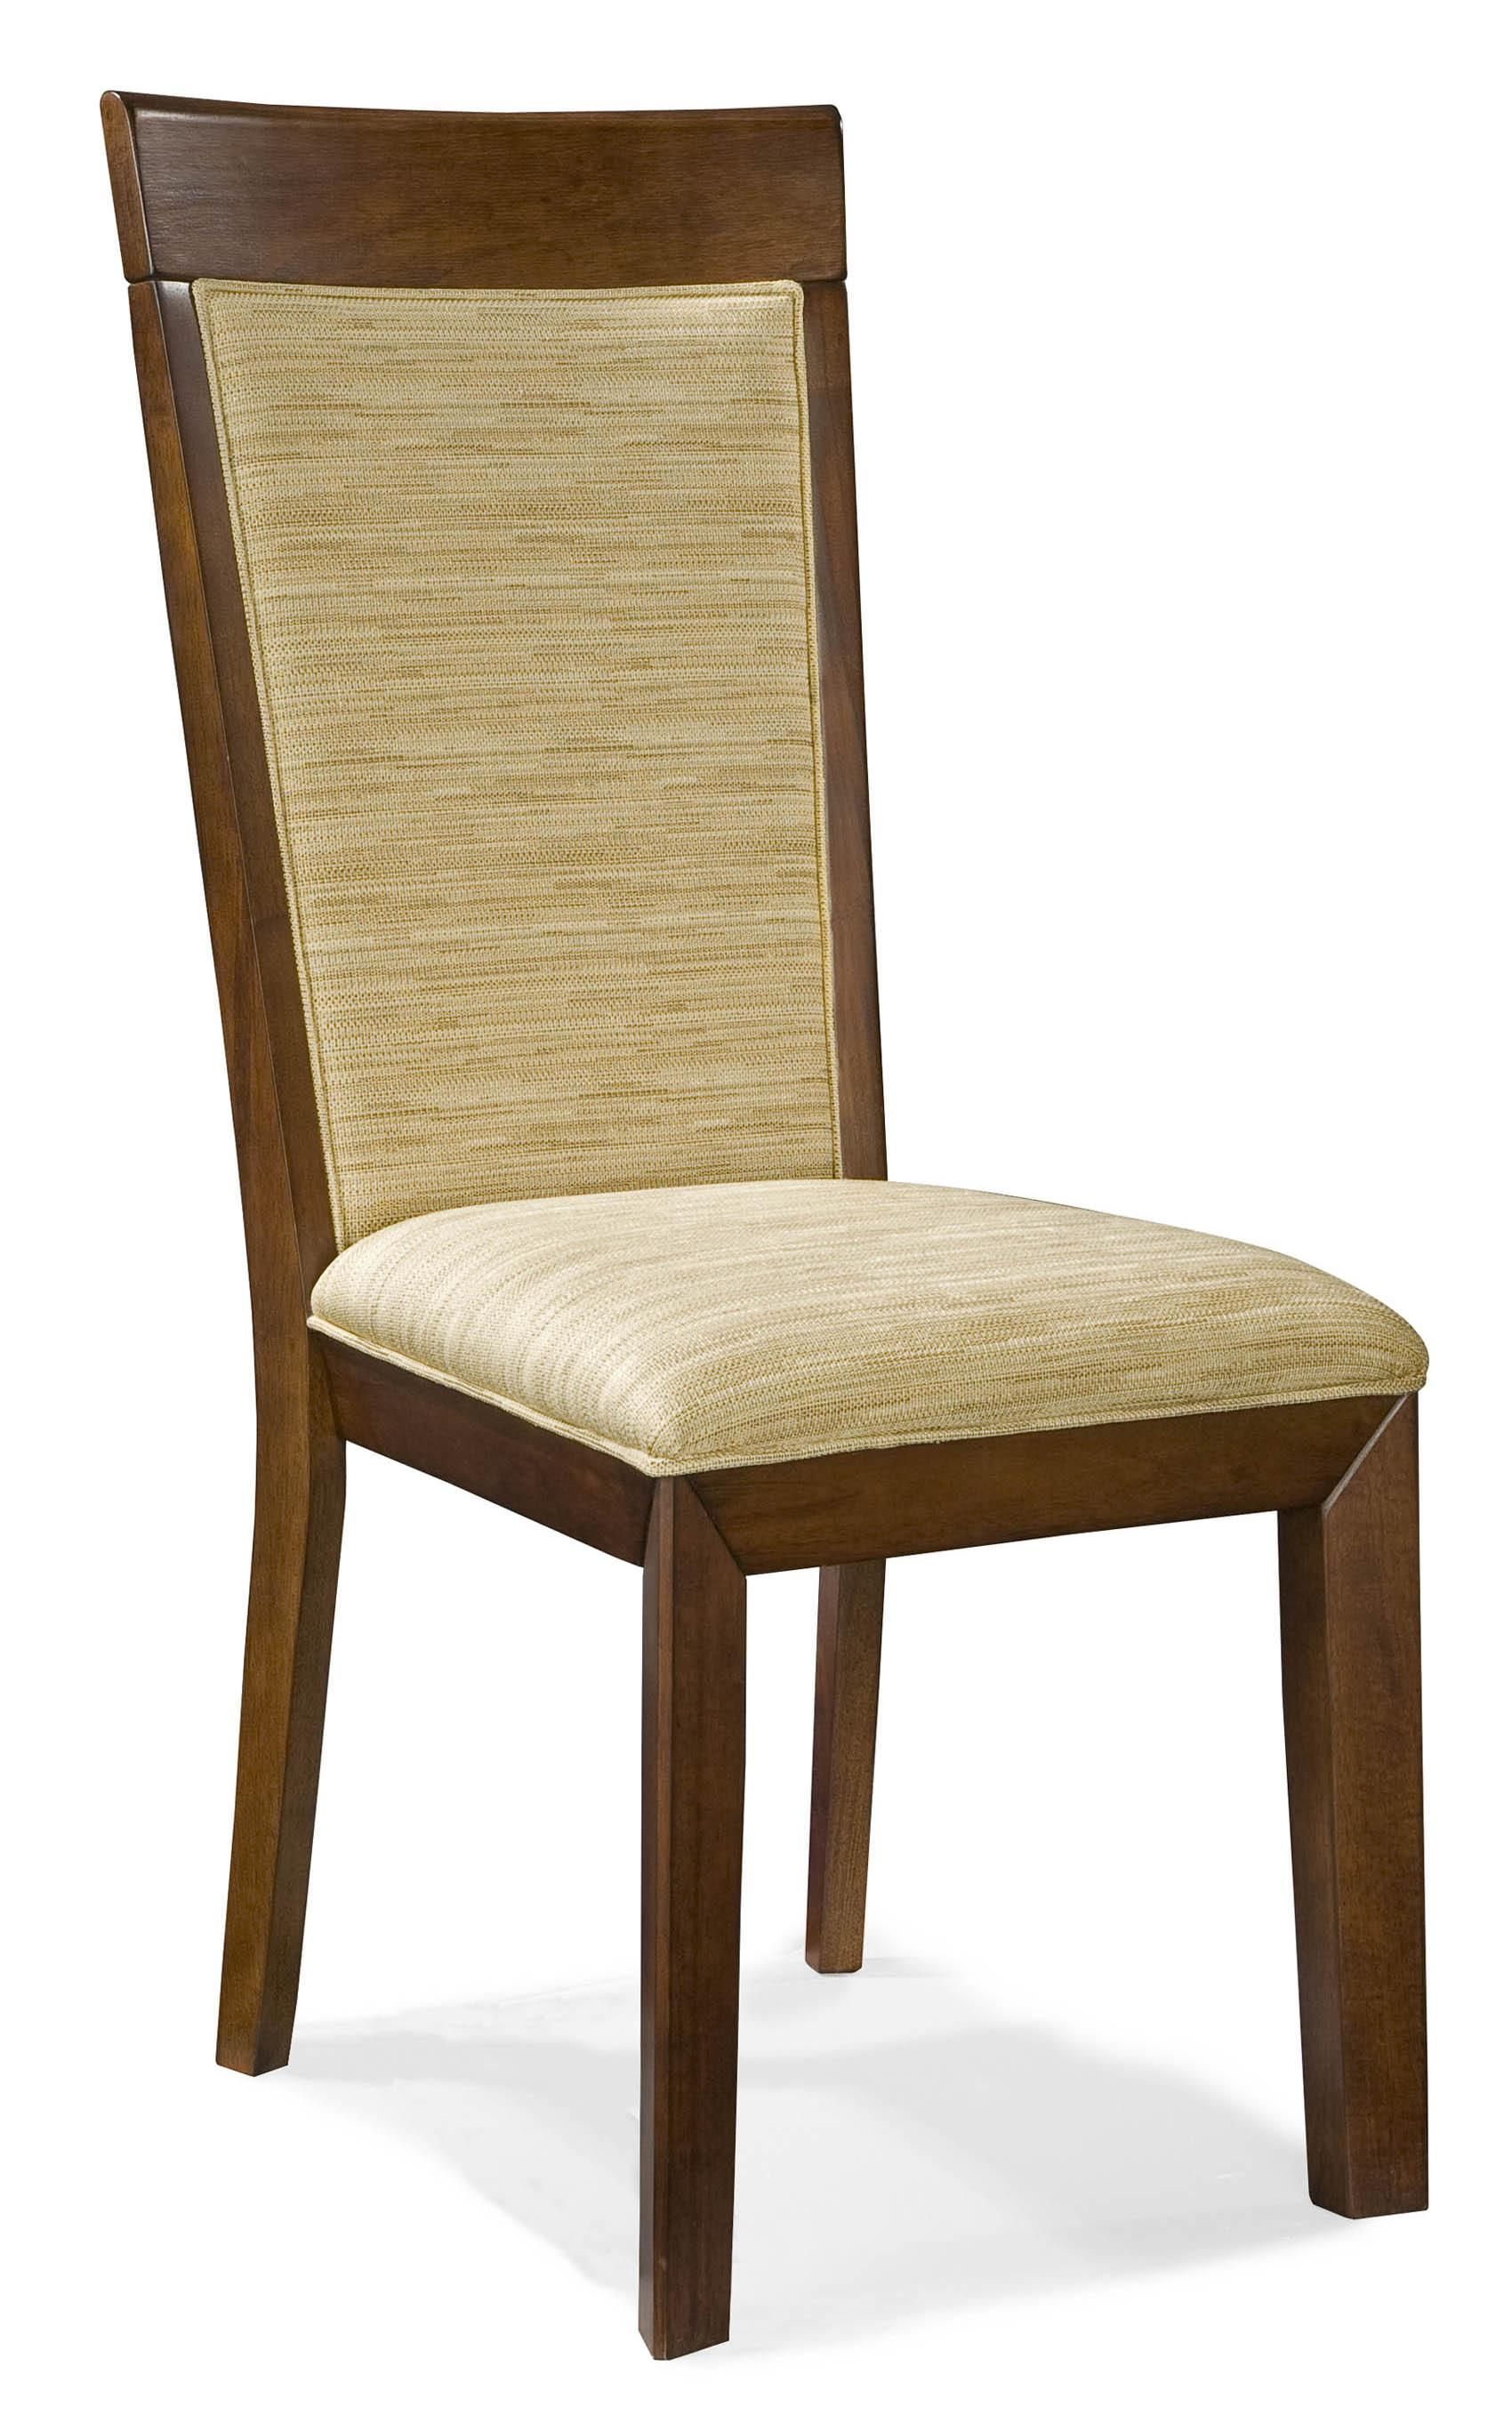 Wellesley rta fabric upholstered side chair by intercon furniture